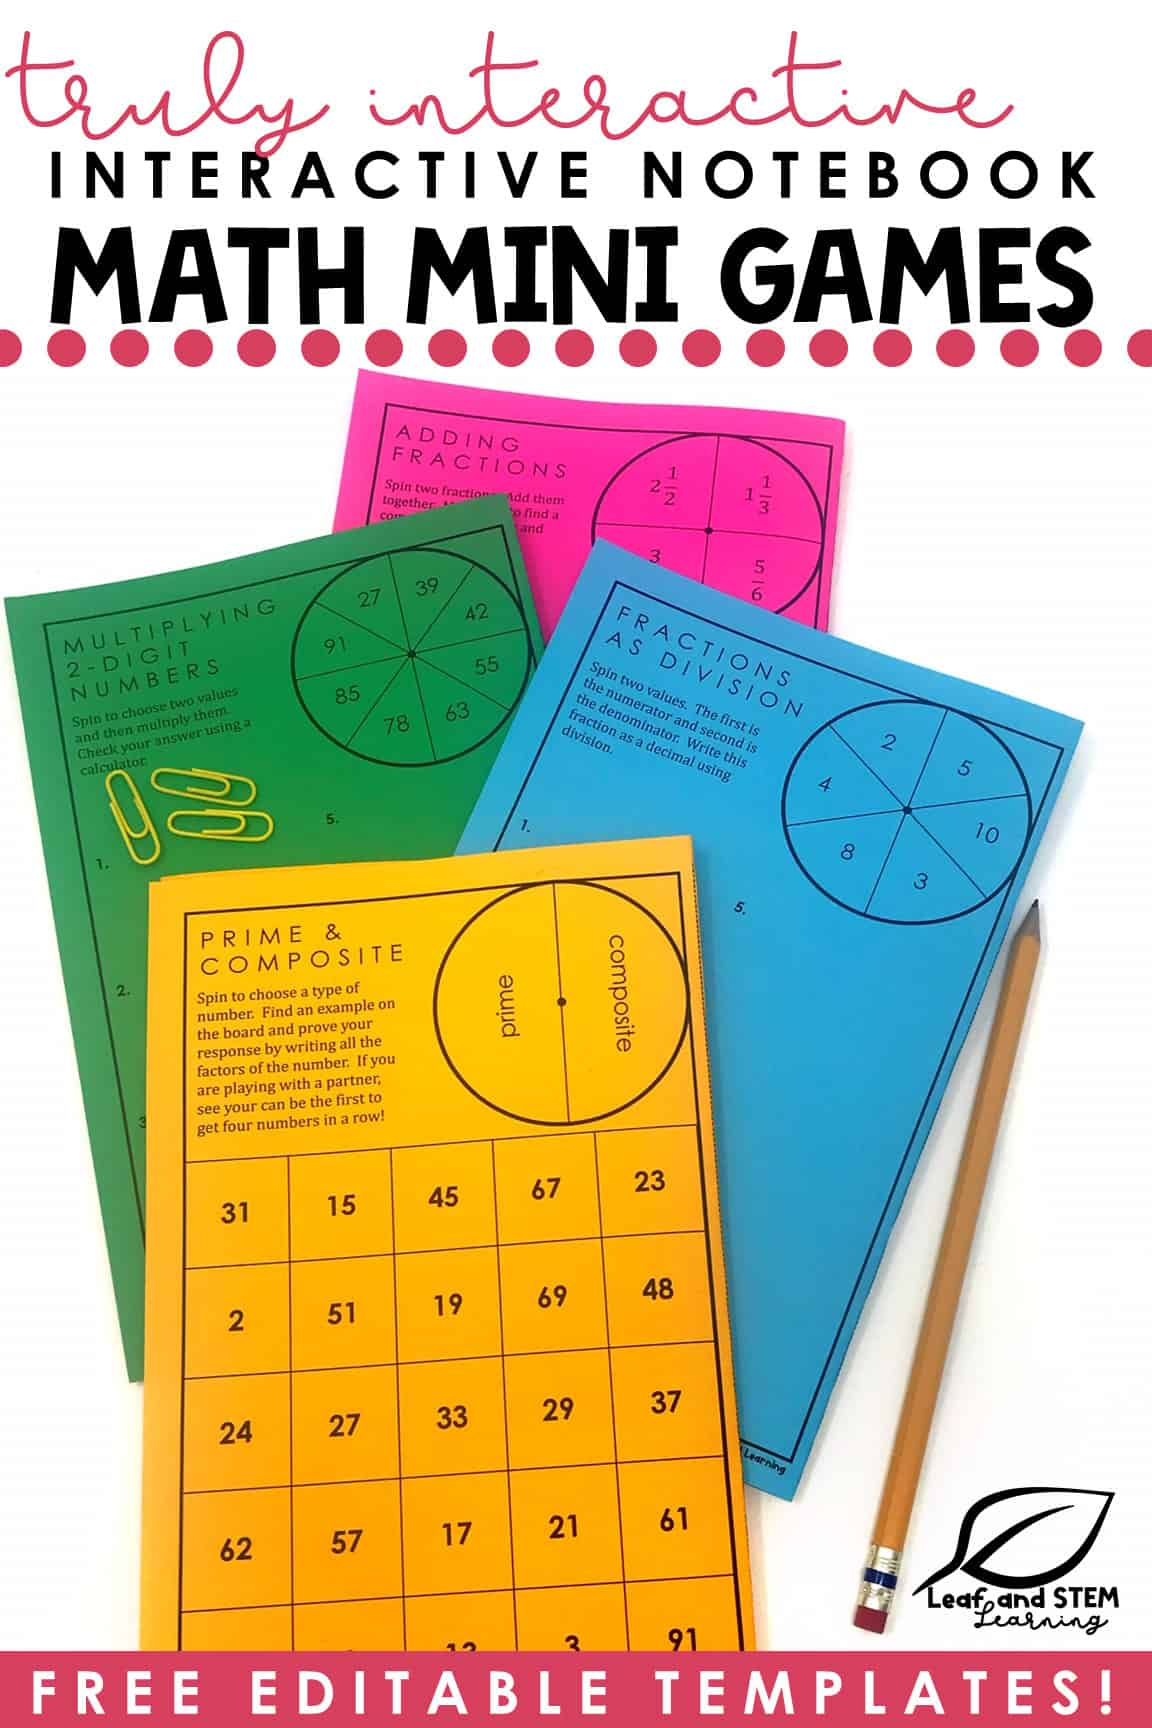 Truly Interactive. Interactive Notebook Math Mini Games. Free Editable Templates!